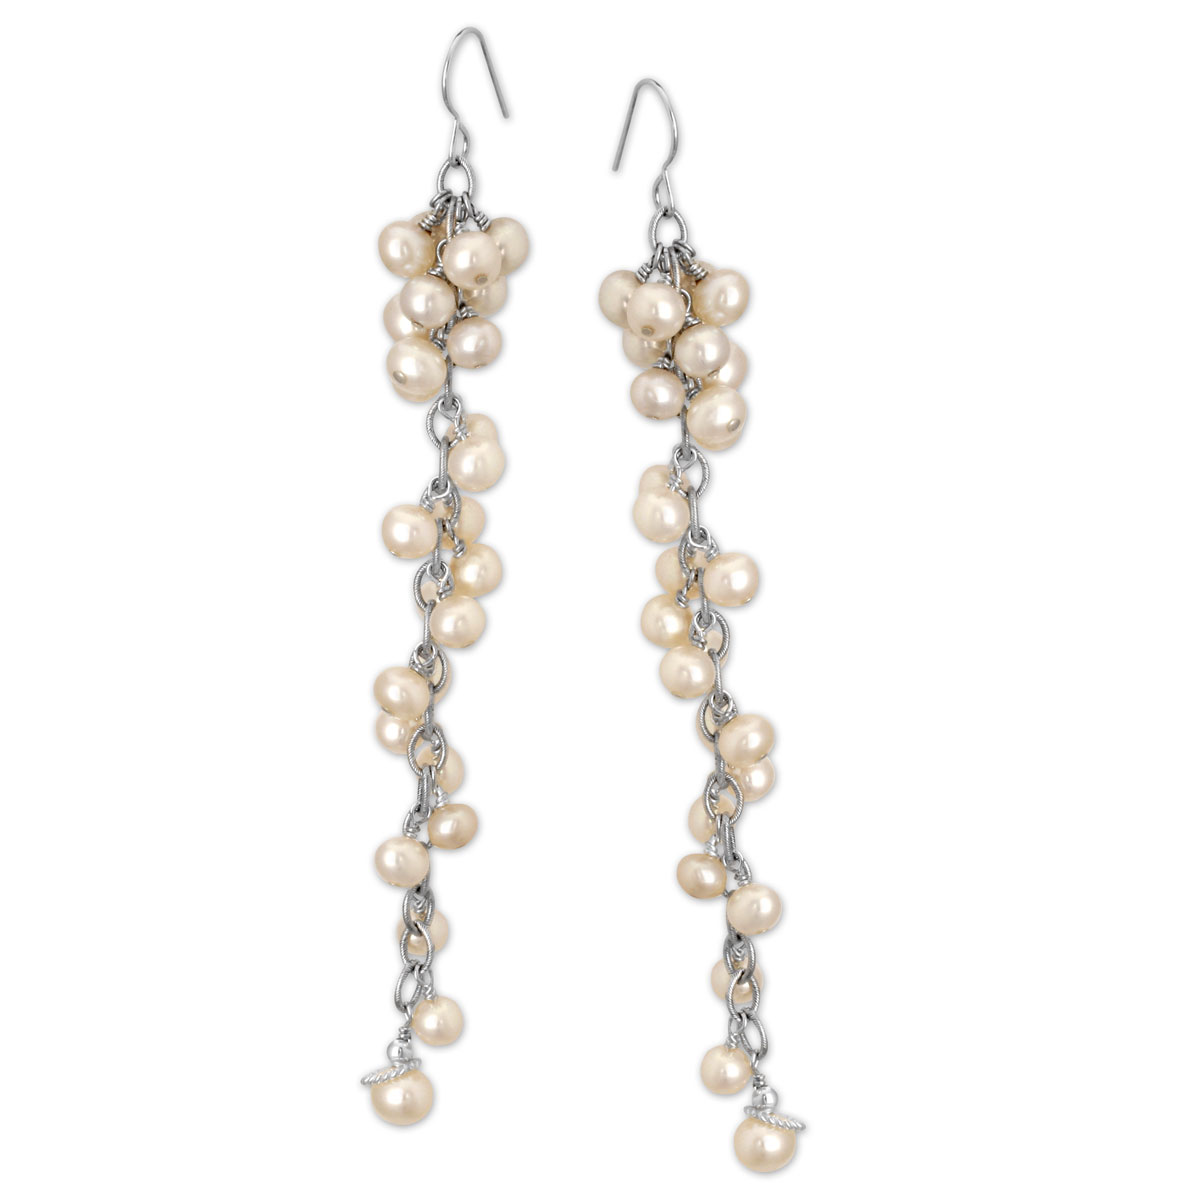 339849-Cascading Pearl Earrings